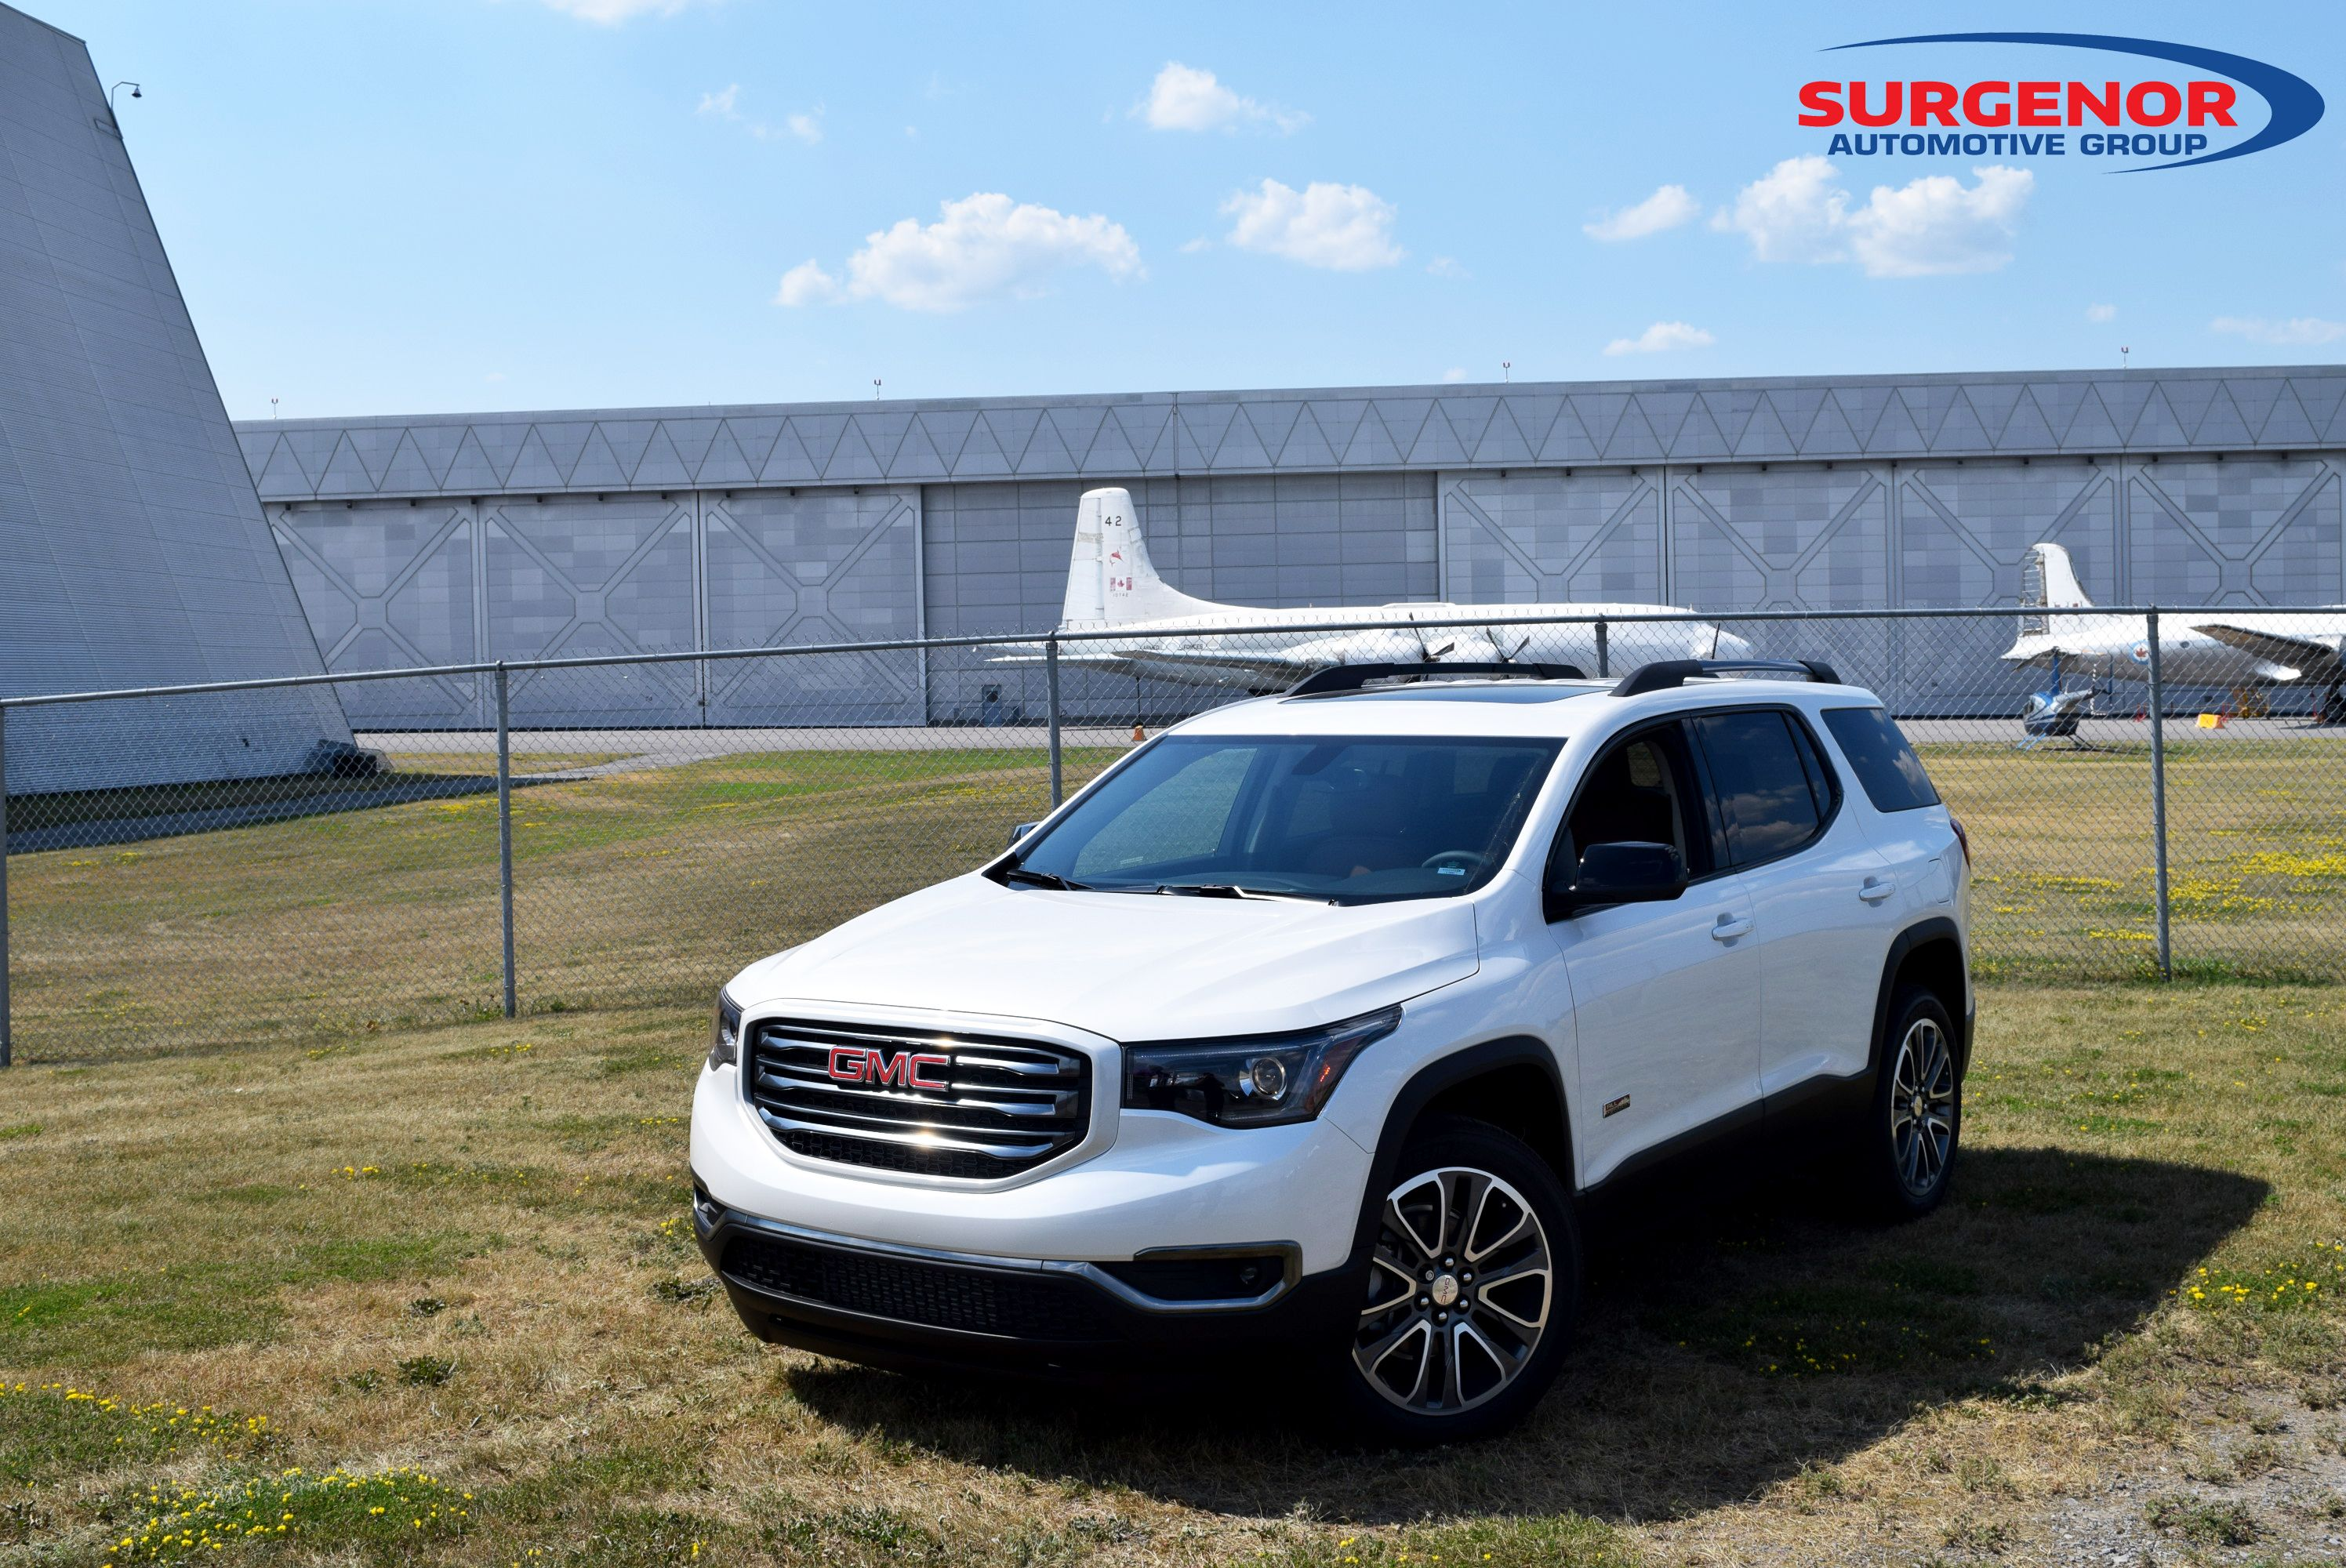 2017 Gmc Acadia Overview And Review Via Www Surgenorottawa Com Gmc Acadia 2017 Gmc Acadia